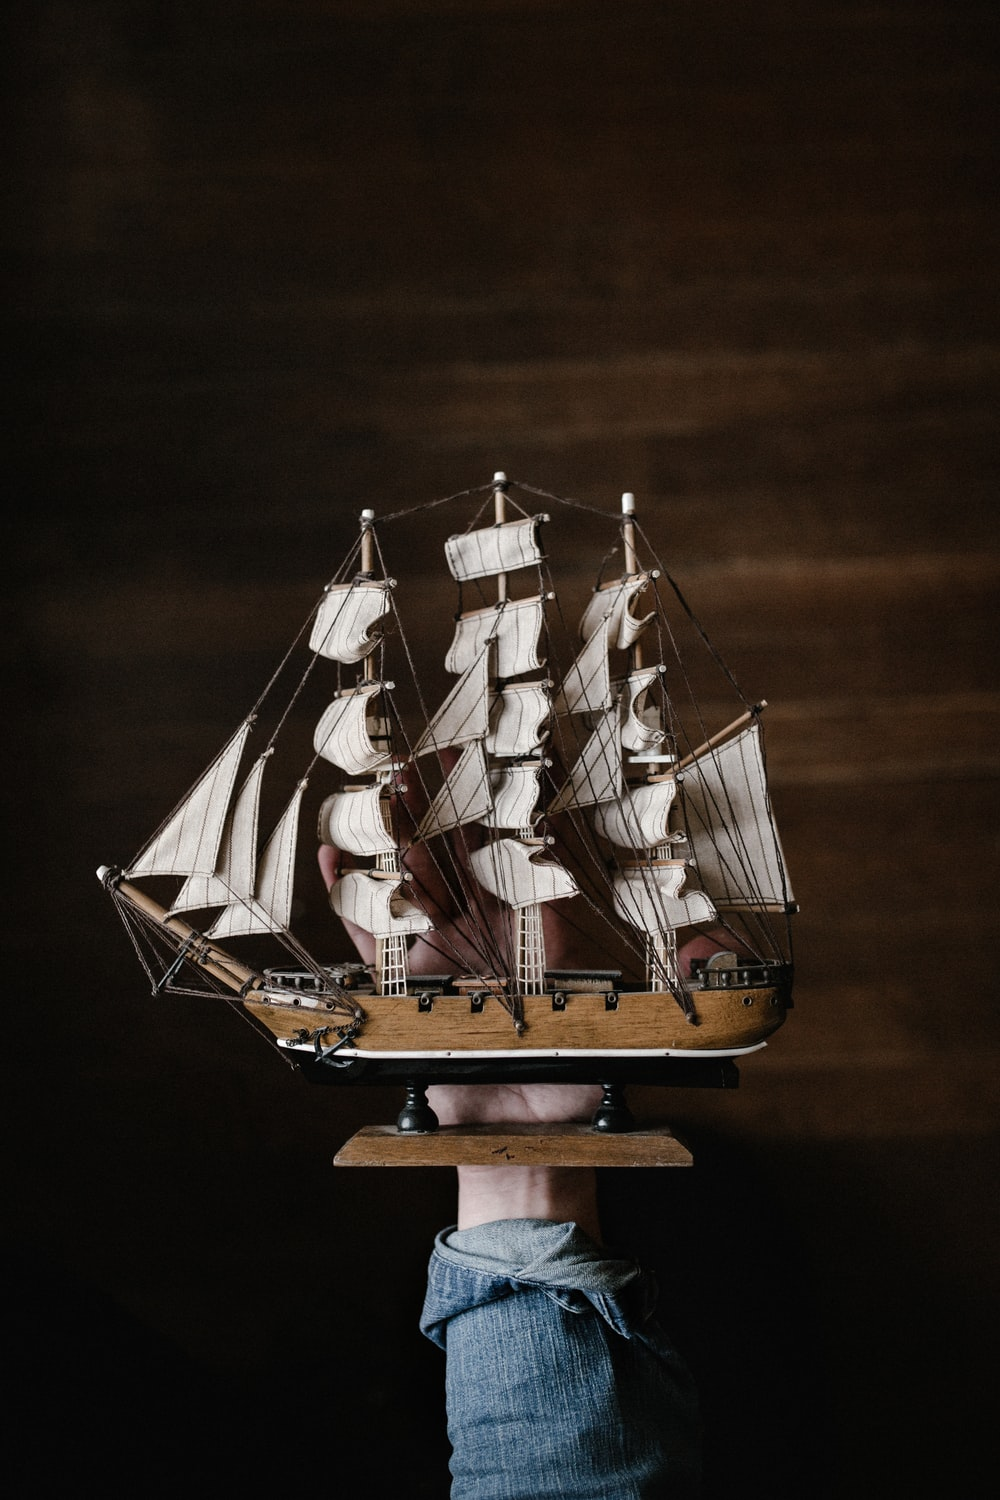 white and brown galleon ship